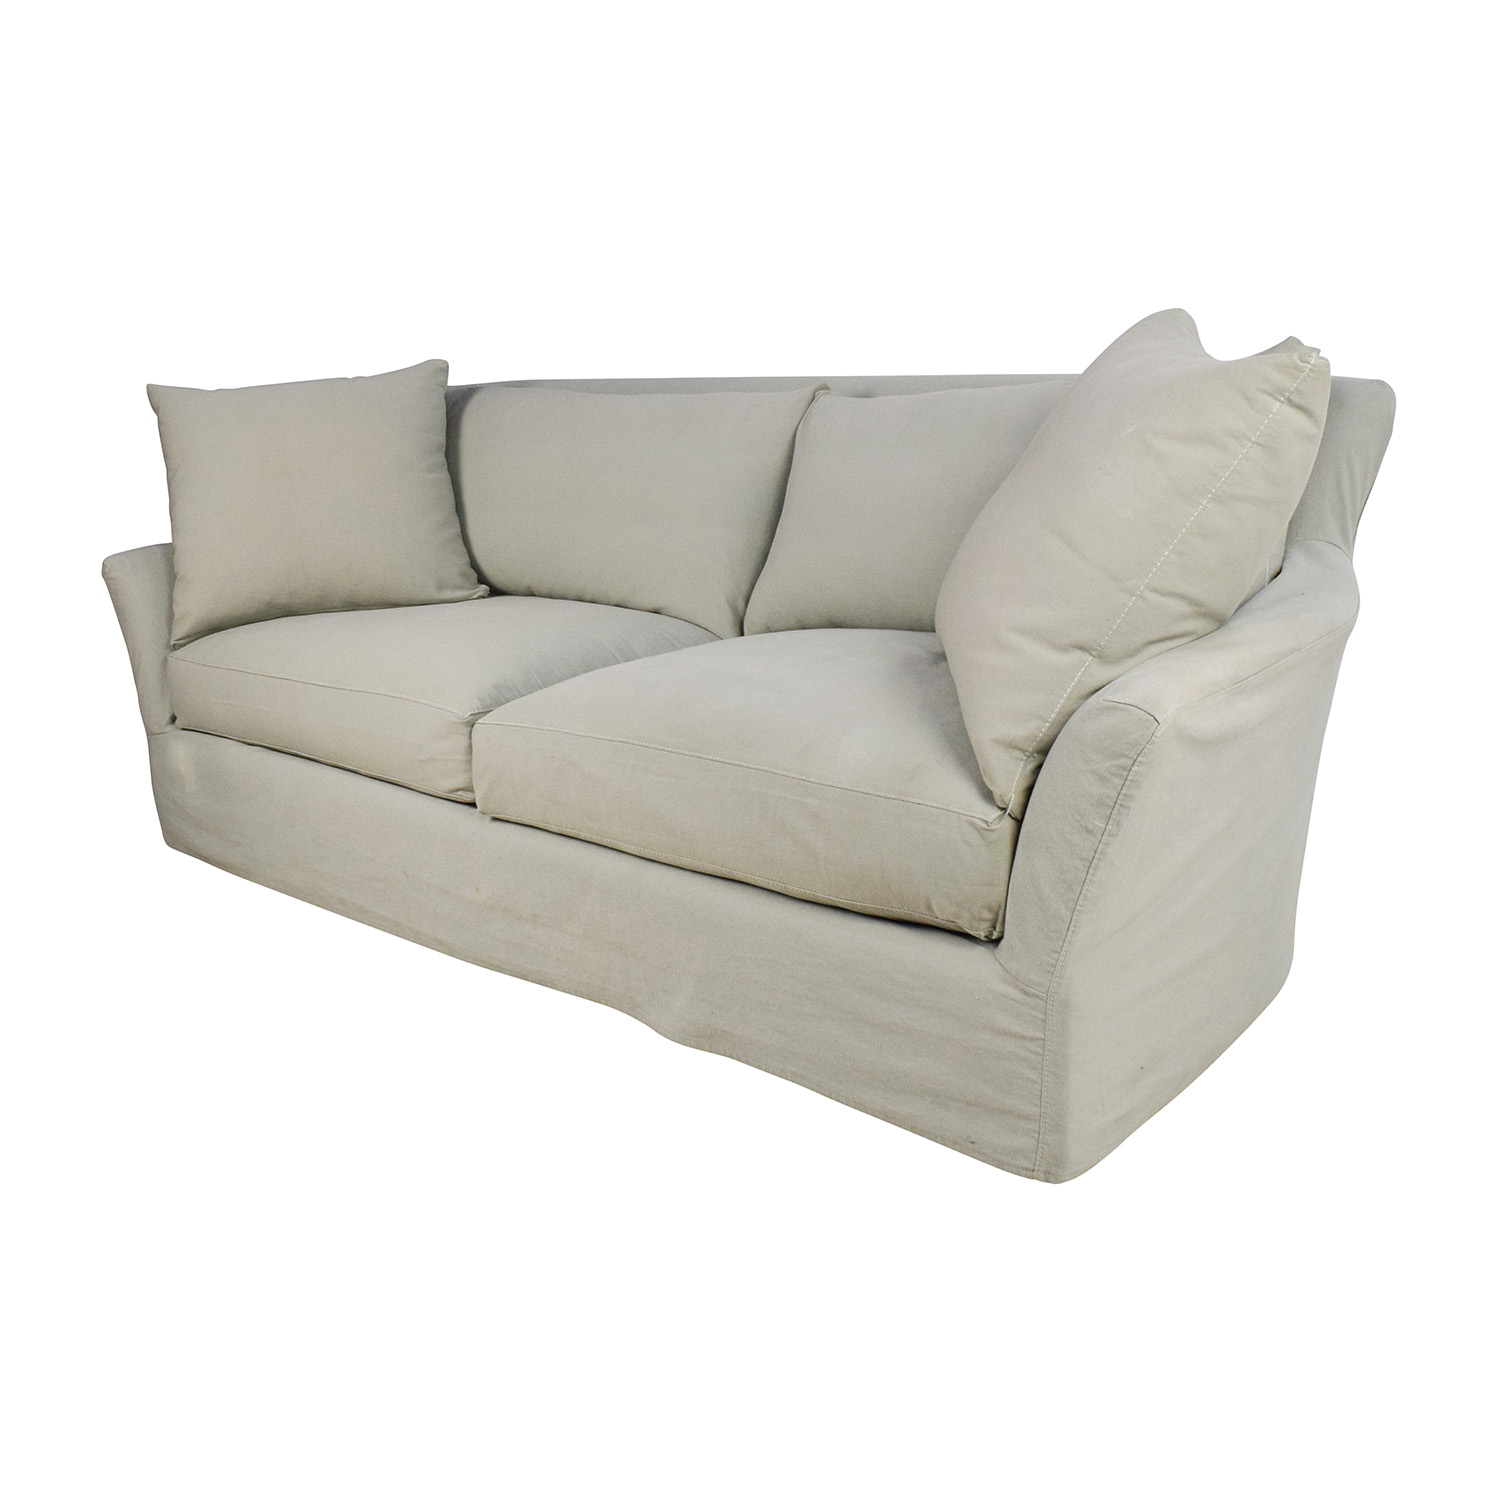 Crate and Barrel Couch | Crate and Barrell Couches | Crate and Barrell Sectional